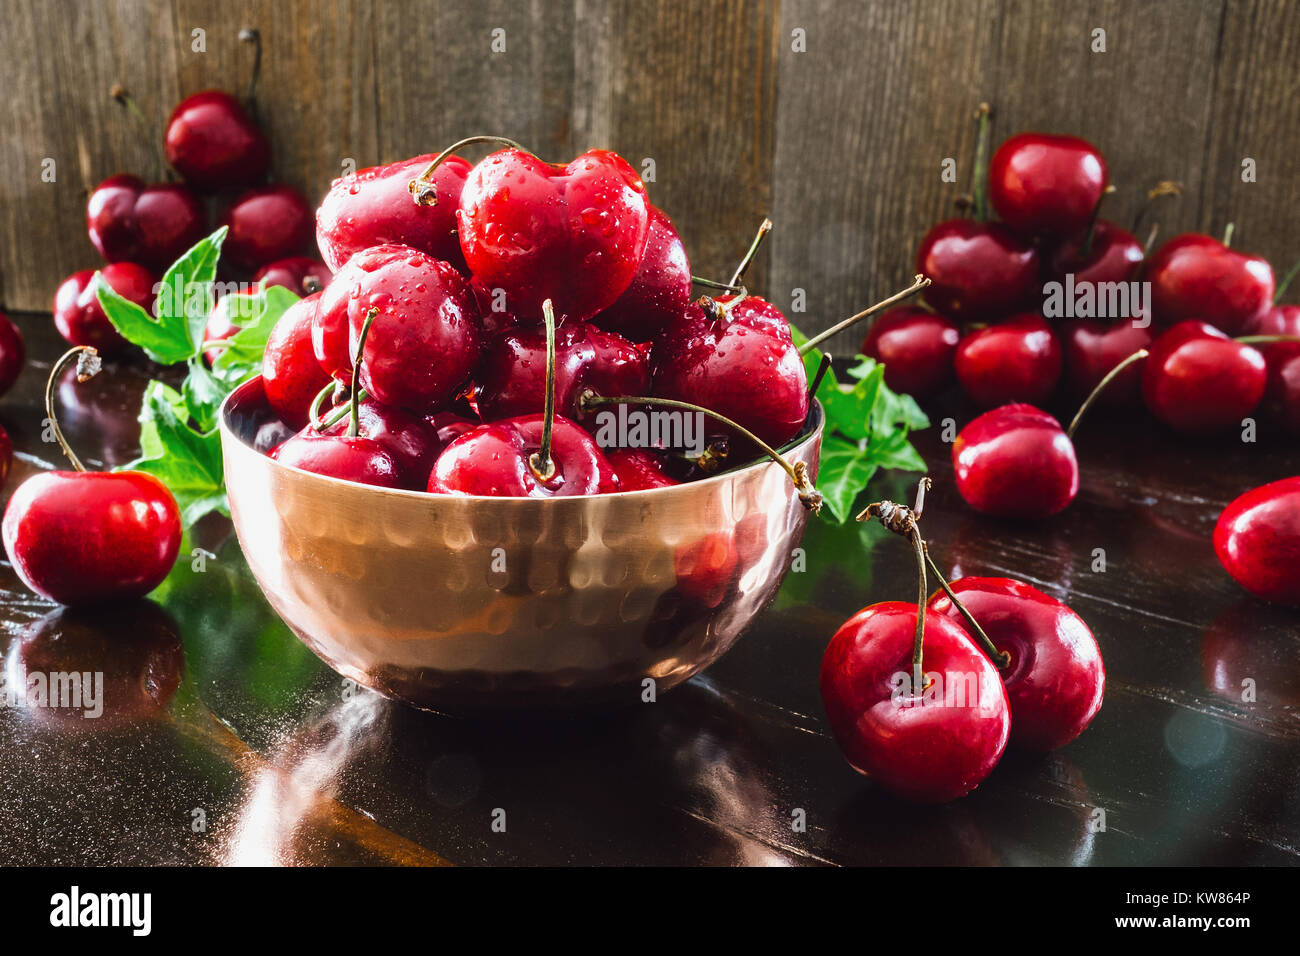 Copper Bowl of Fresh Cherries on Dark Table with Ivy - Stock Image